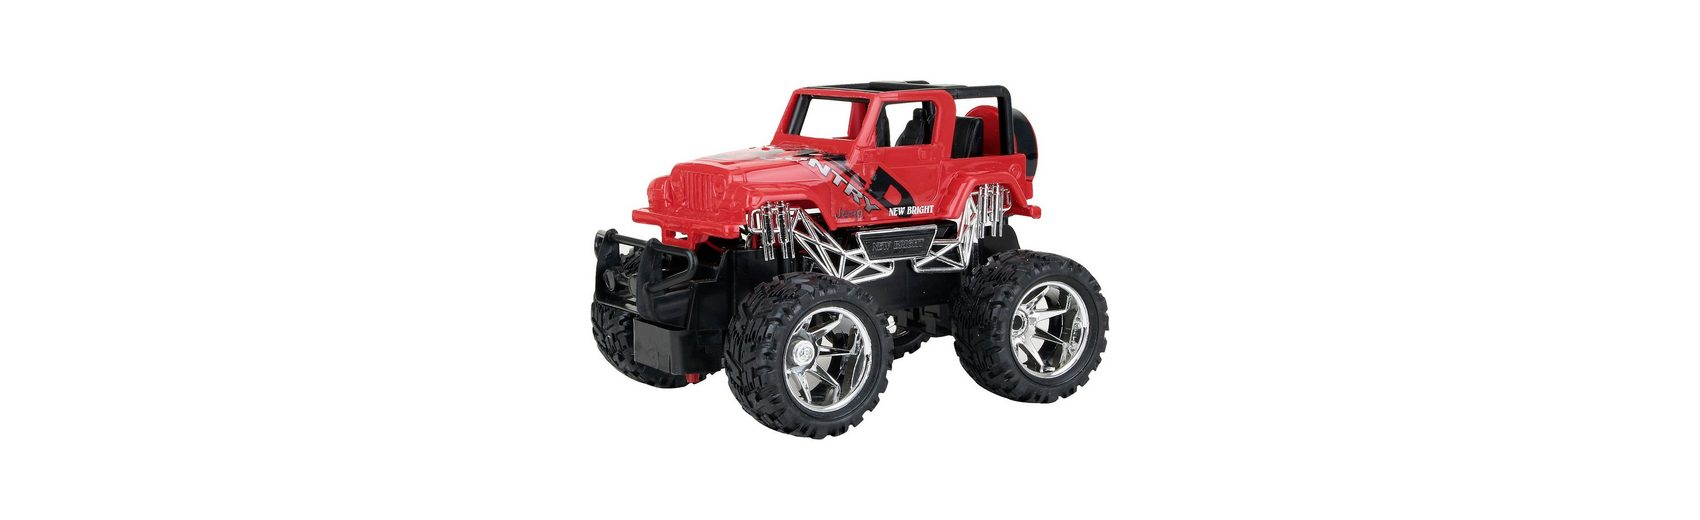 New Bright RC Jeep Offroad rot